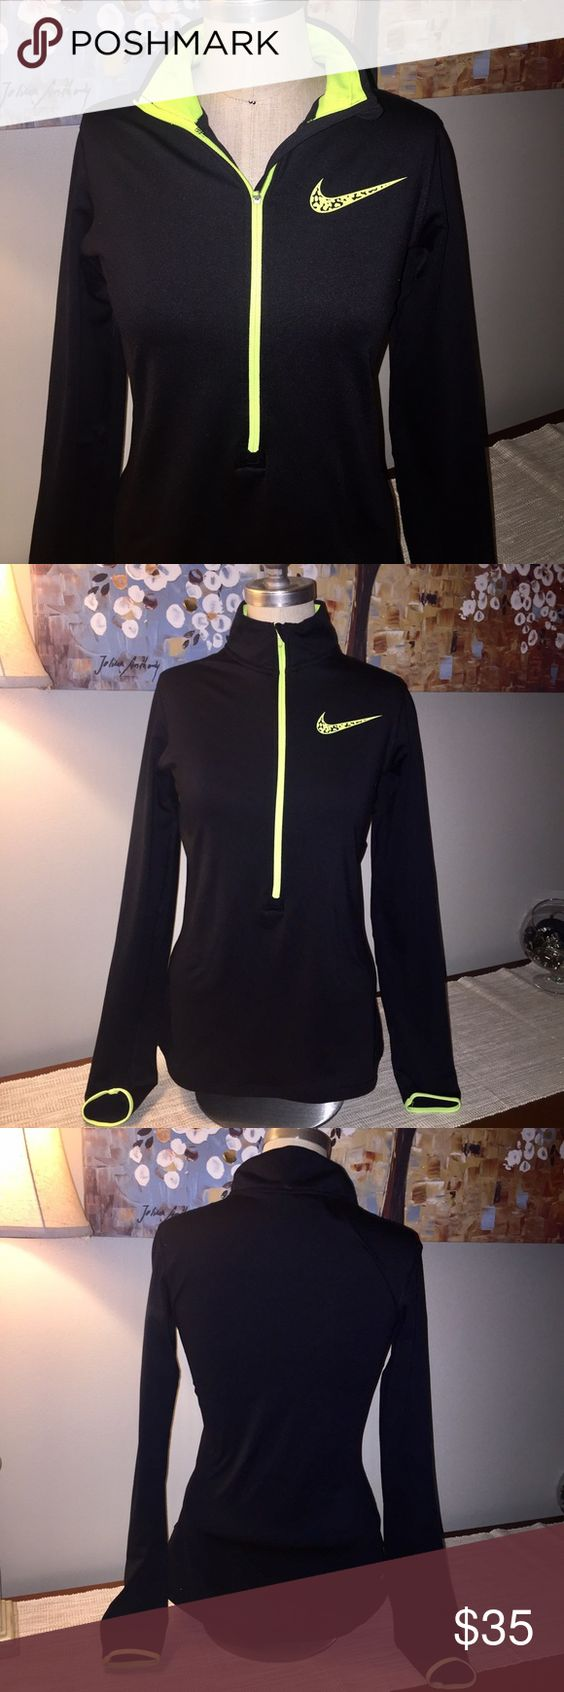 Nike half zip pullover NWOT excellent condition Nike Tops Sweatshirts & Hoodies